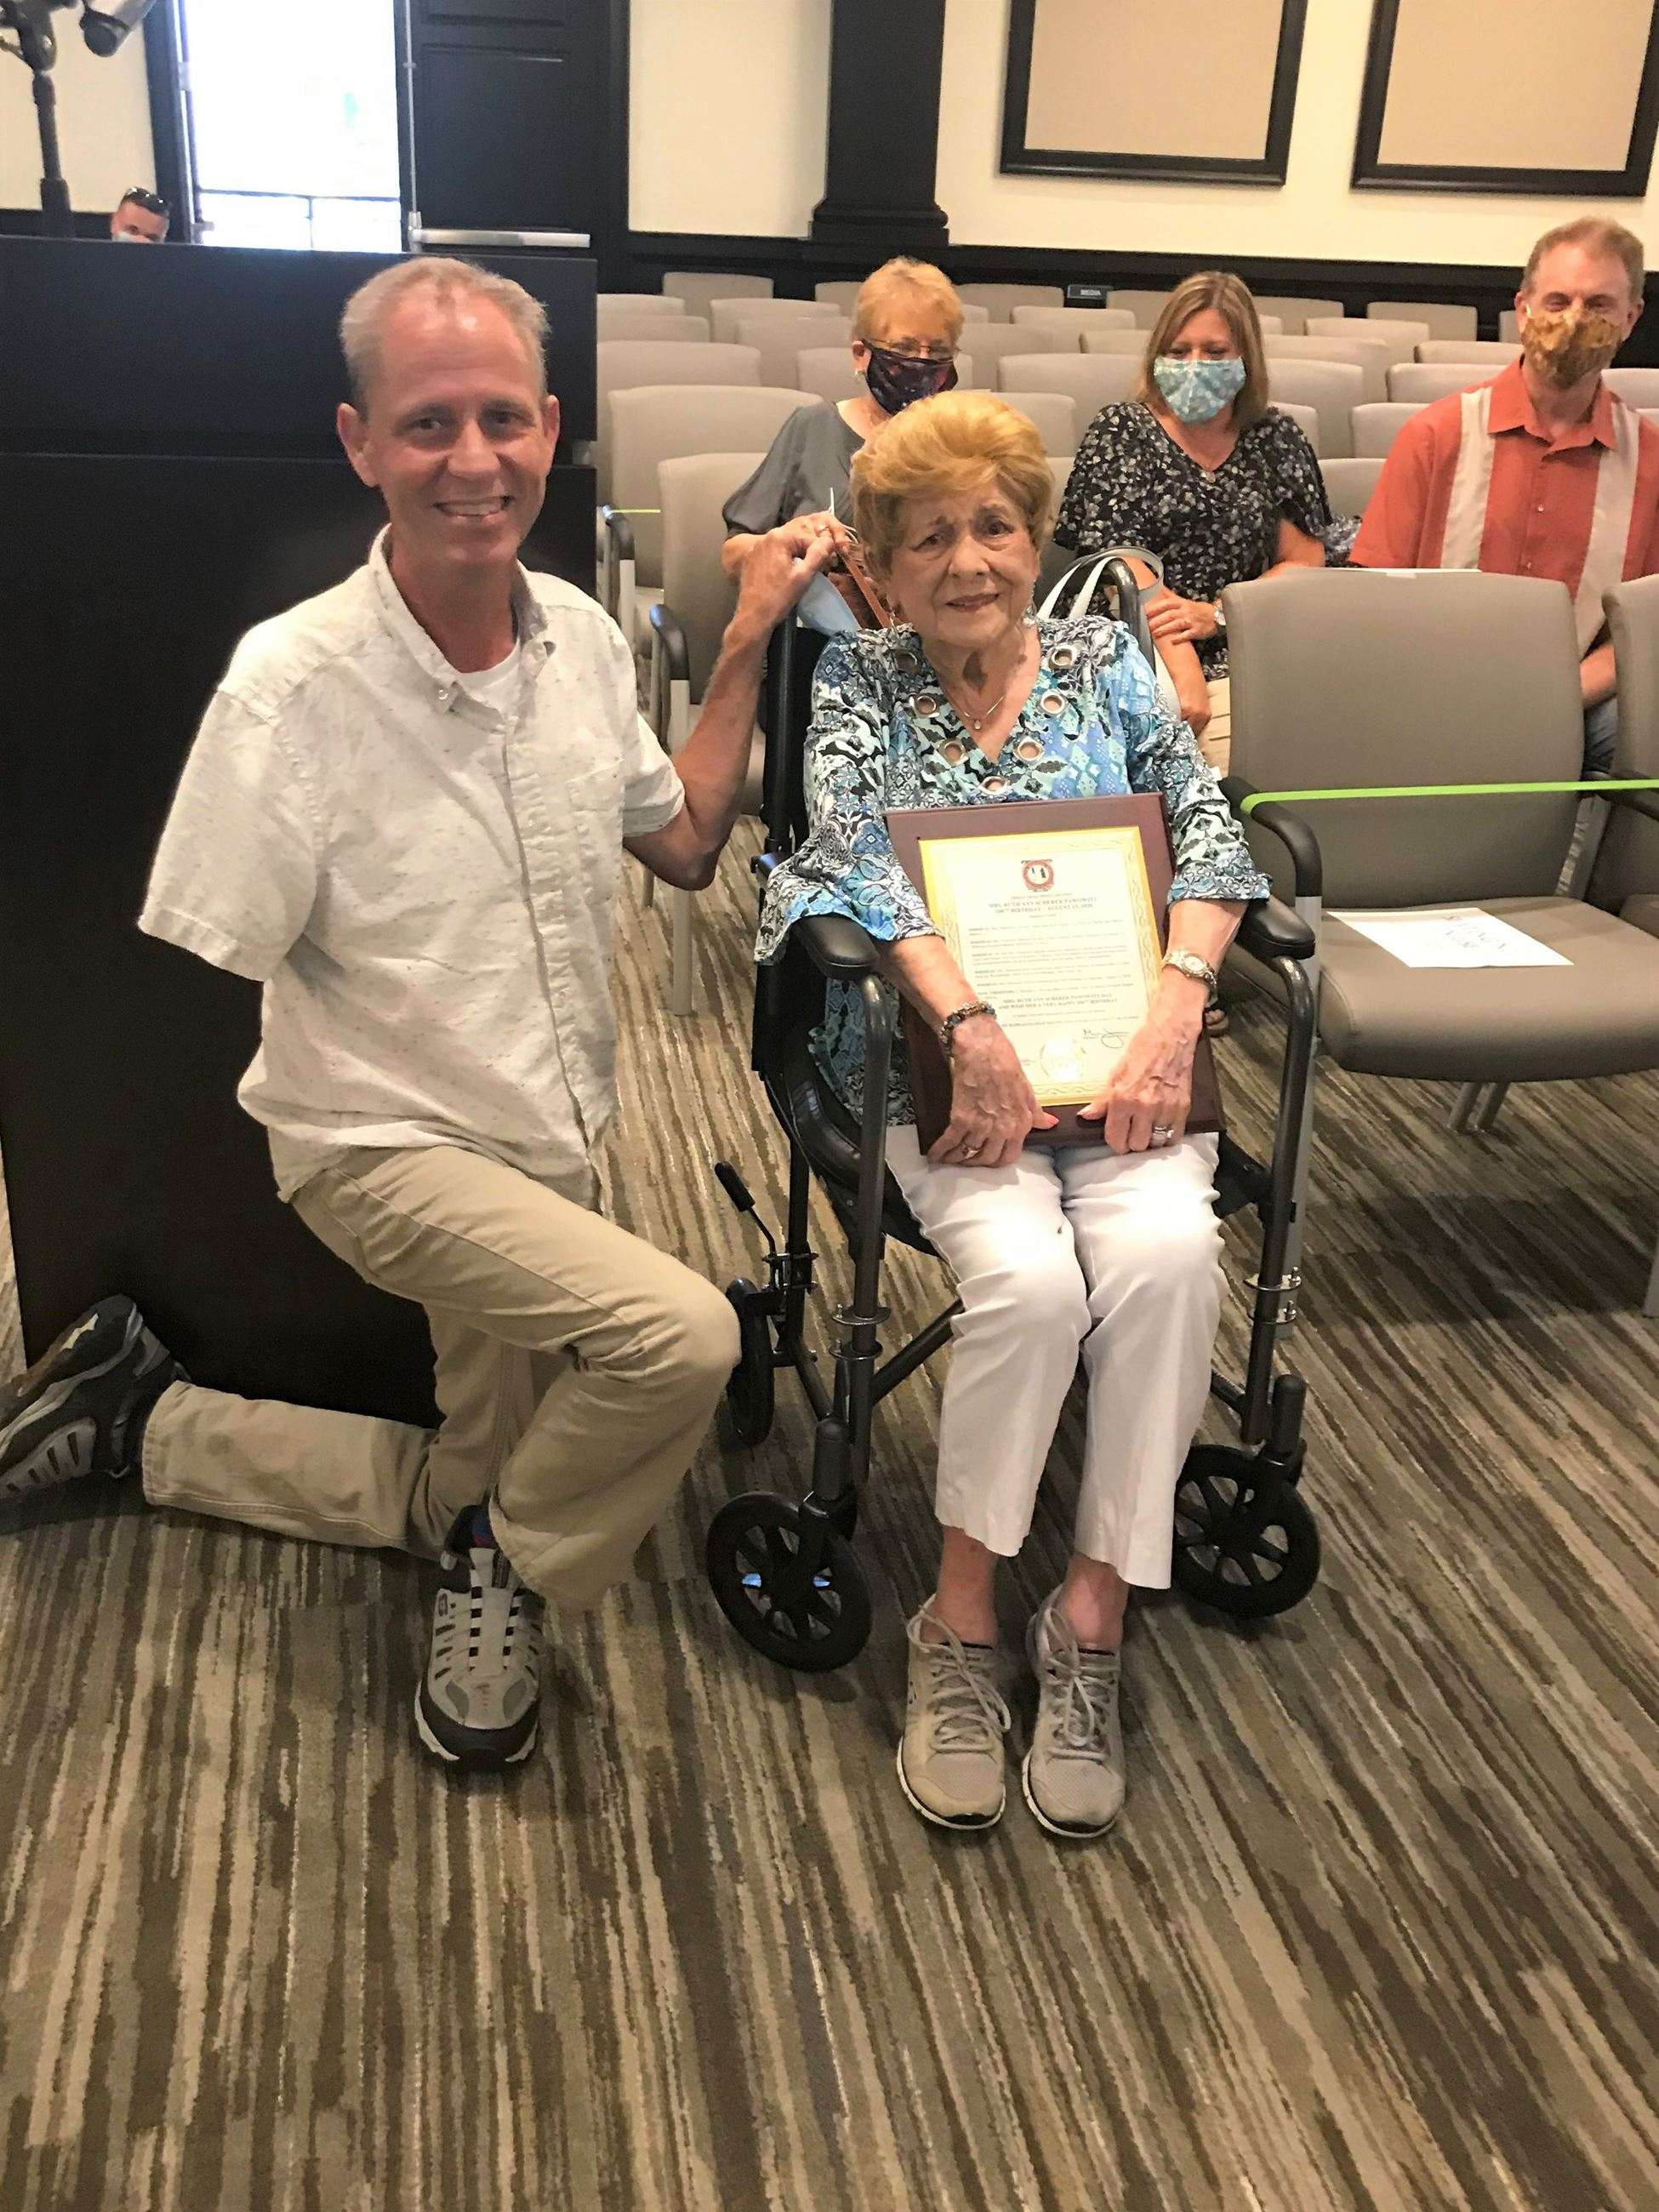 Ruth Ann Scherer Pawowitz Receives 100th birthday proclamation from Mayor Michael Alvarez